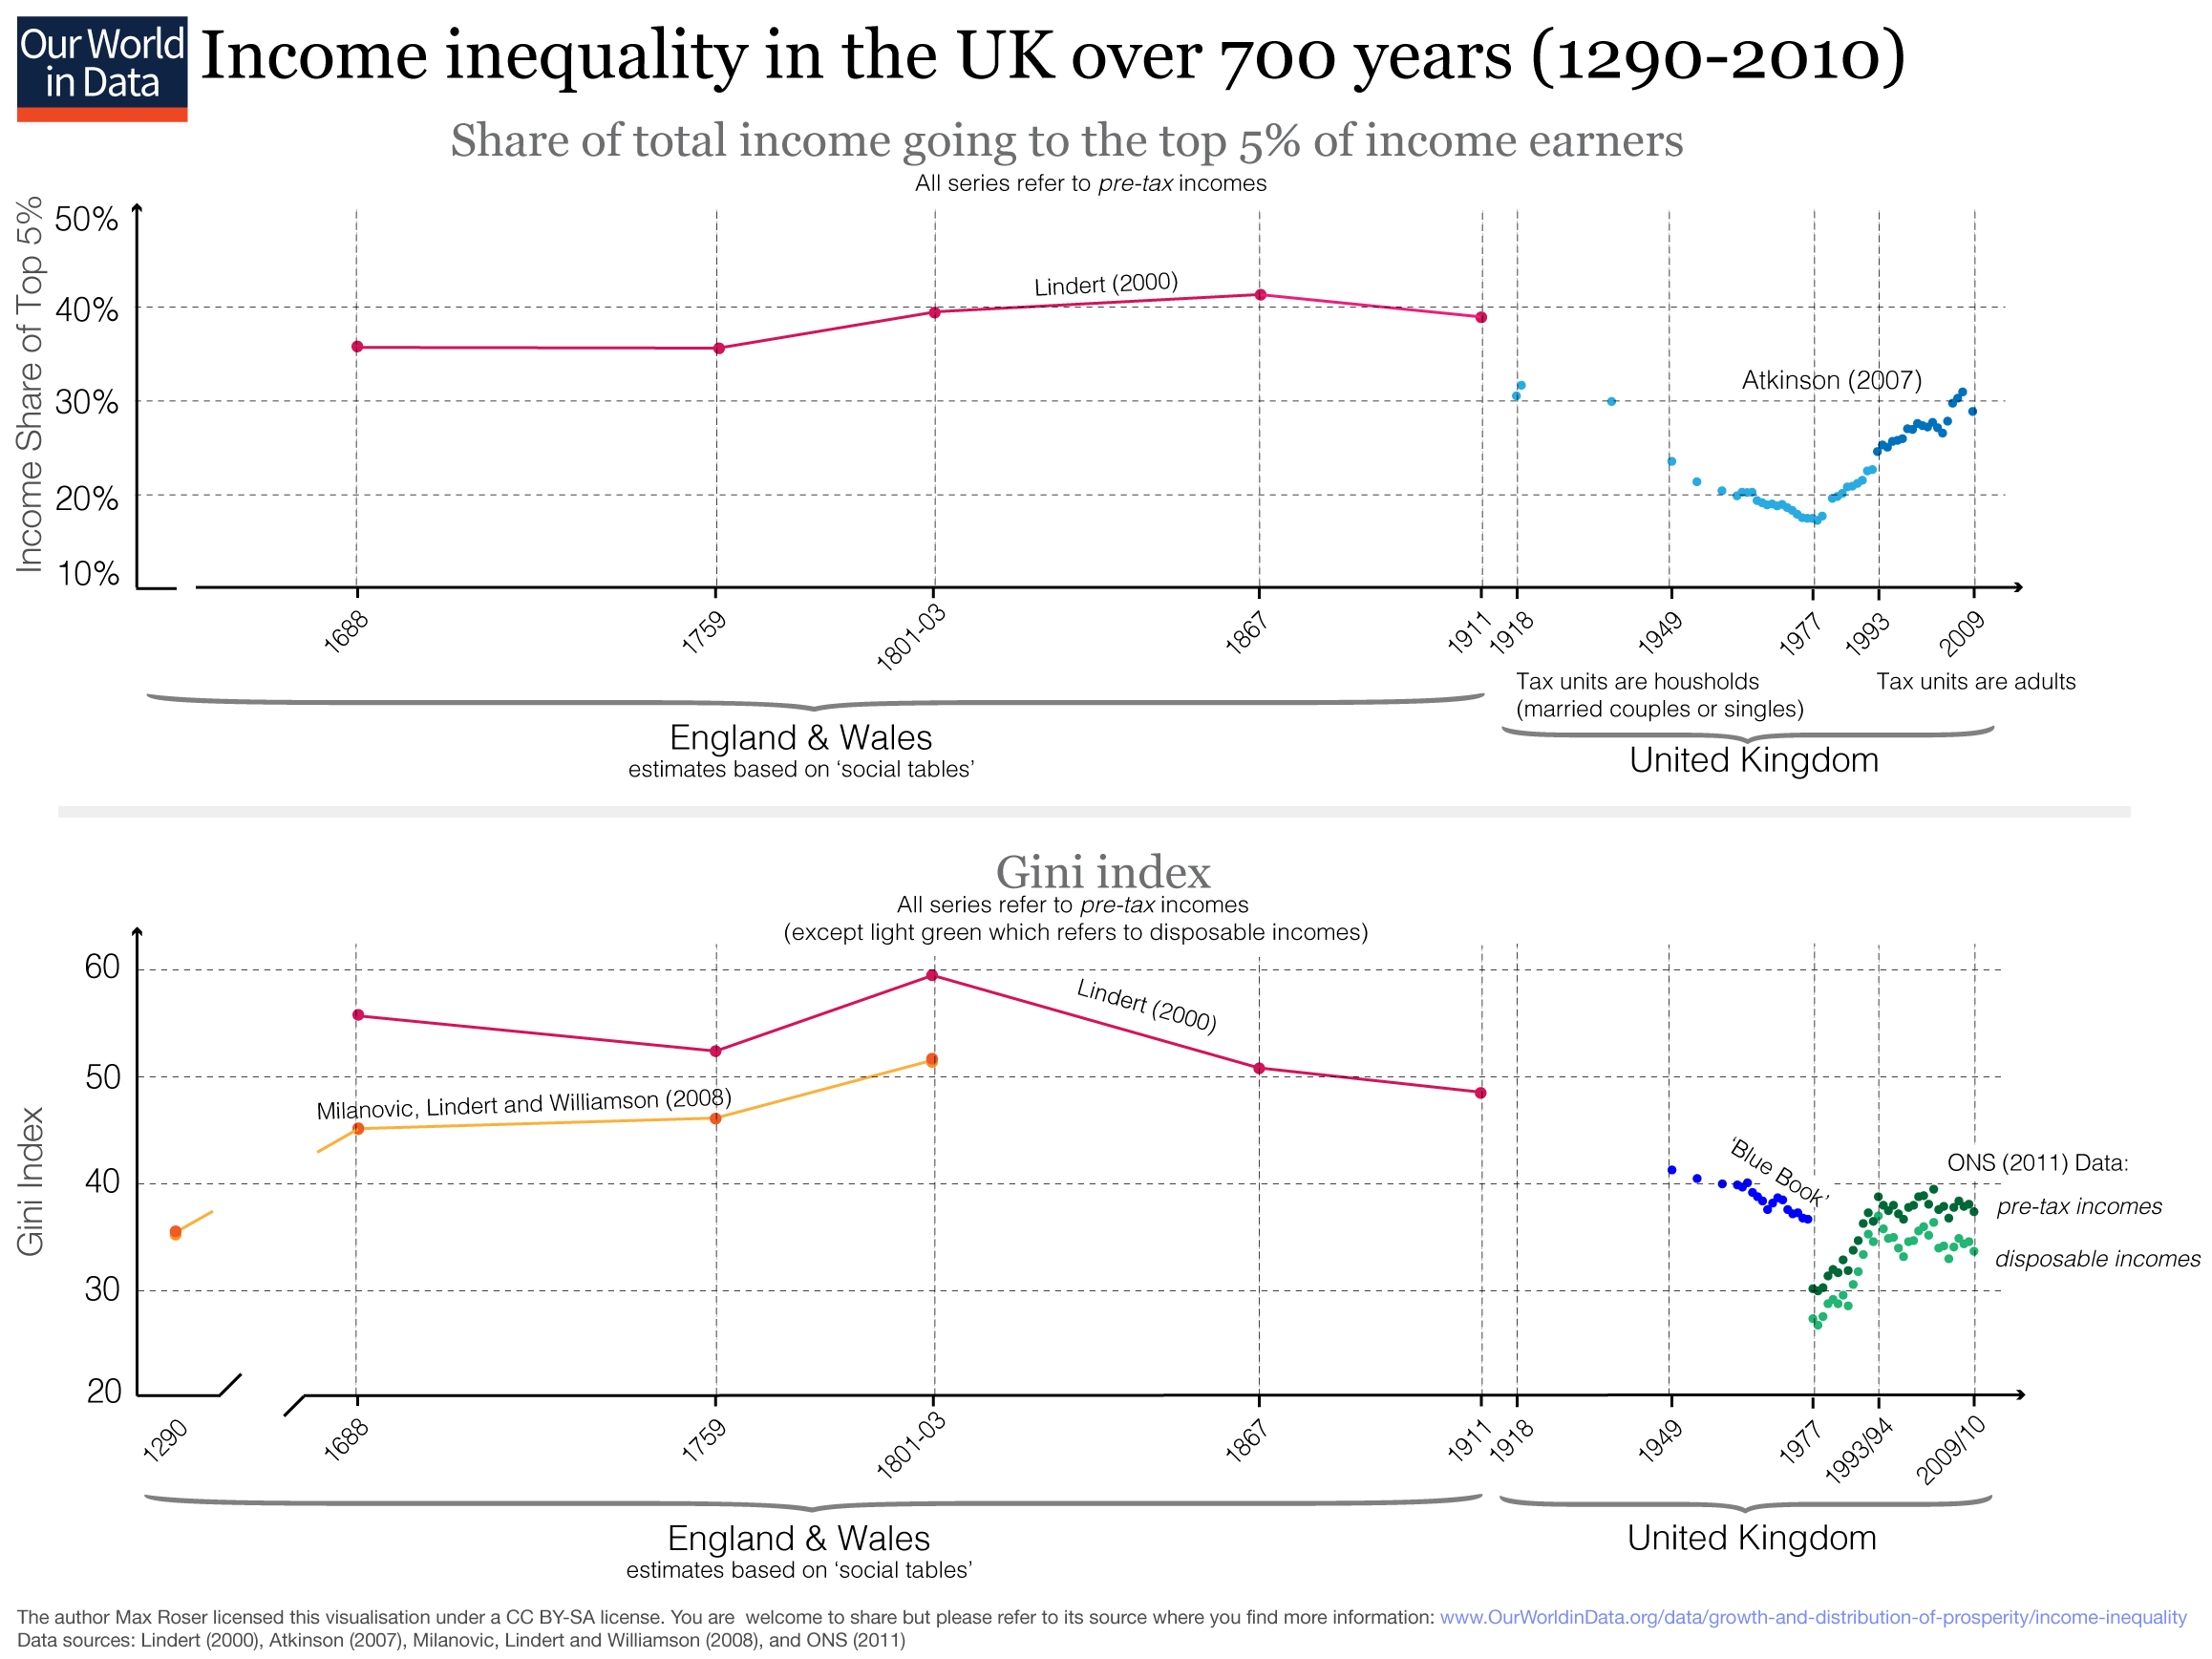 Income Inequality - Our World in Data